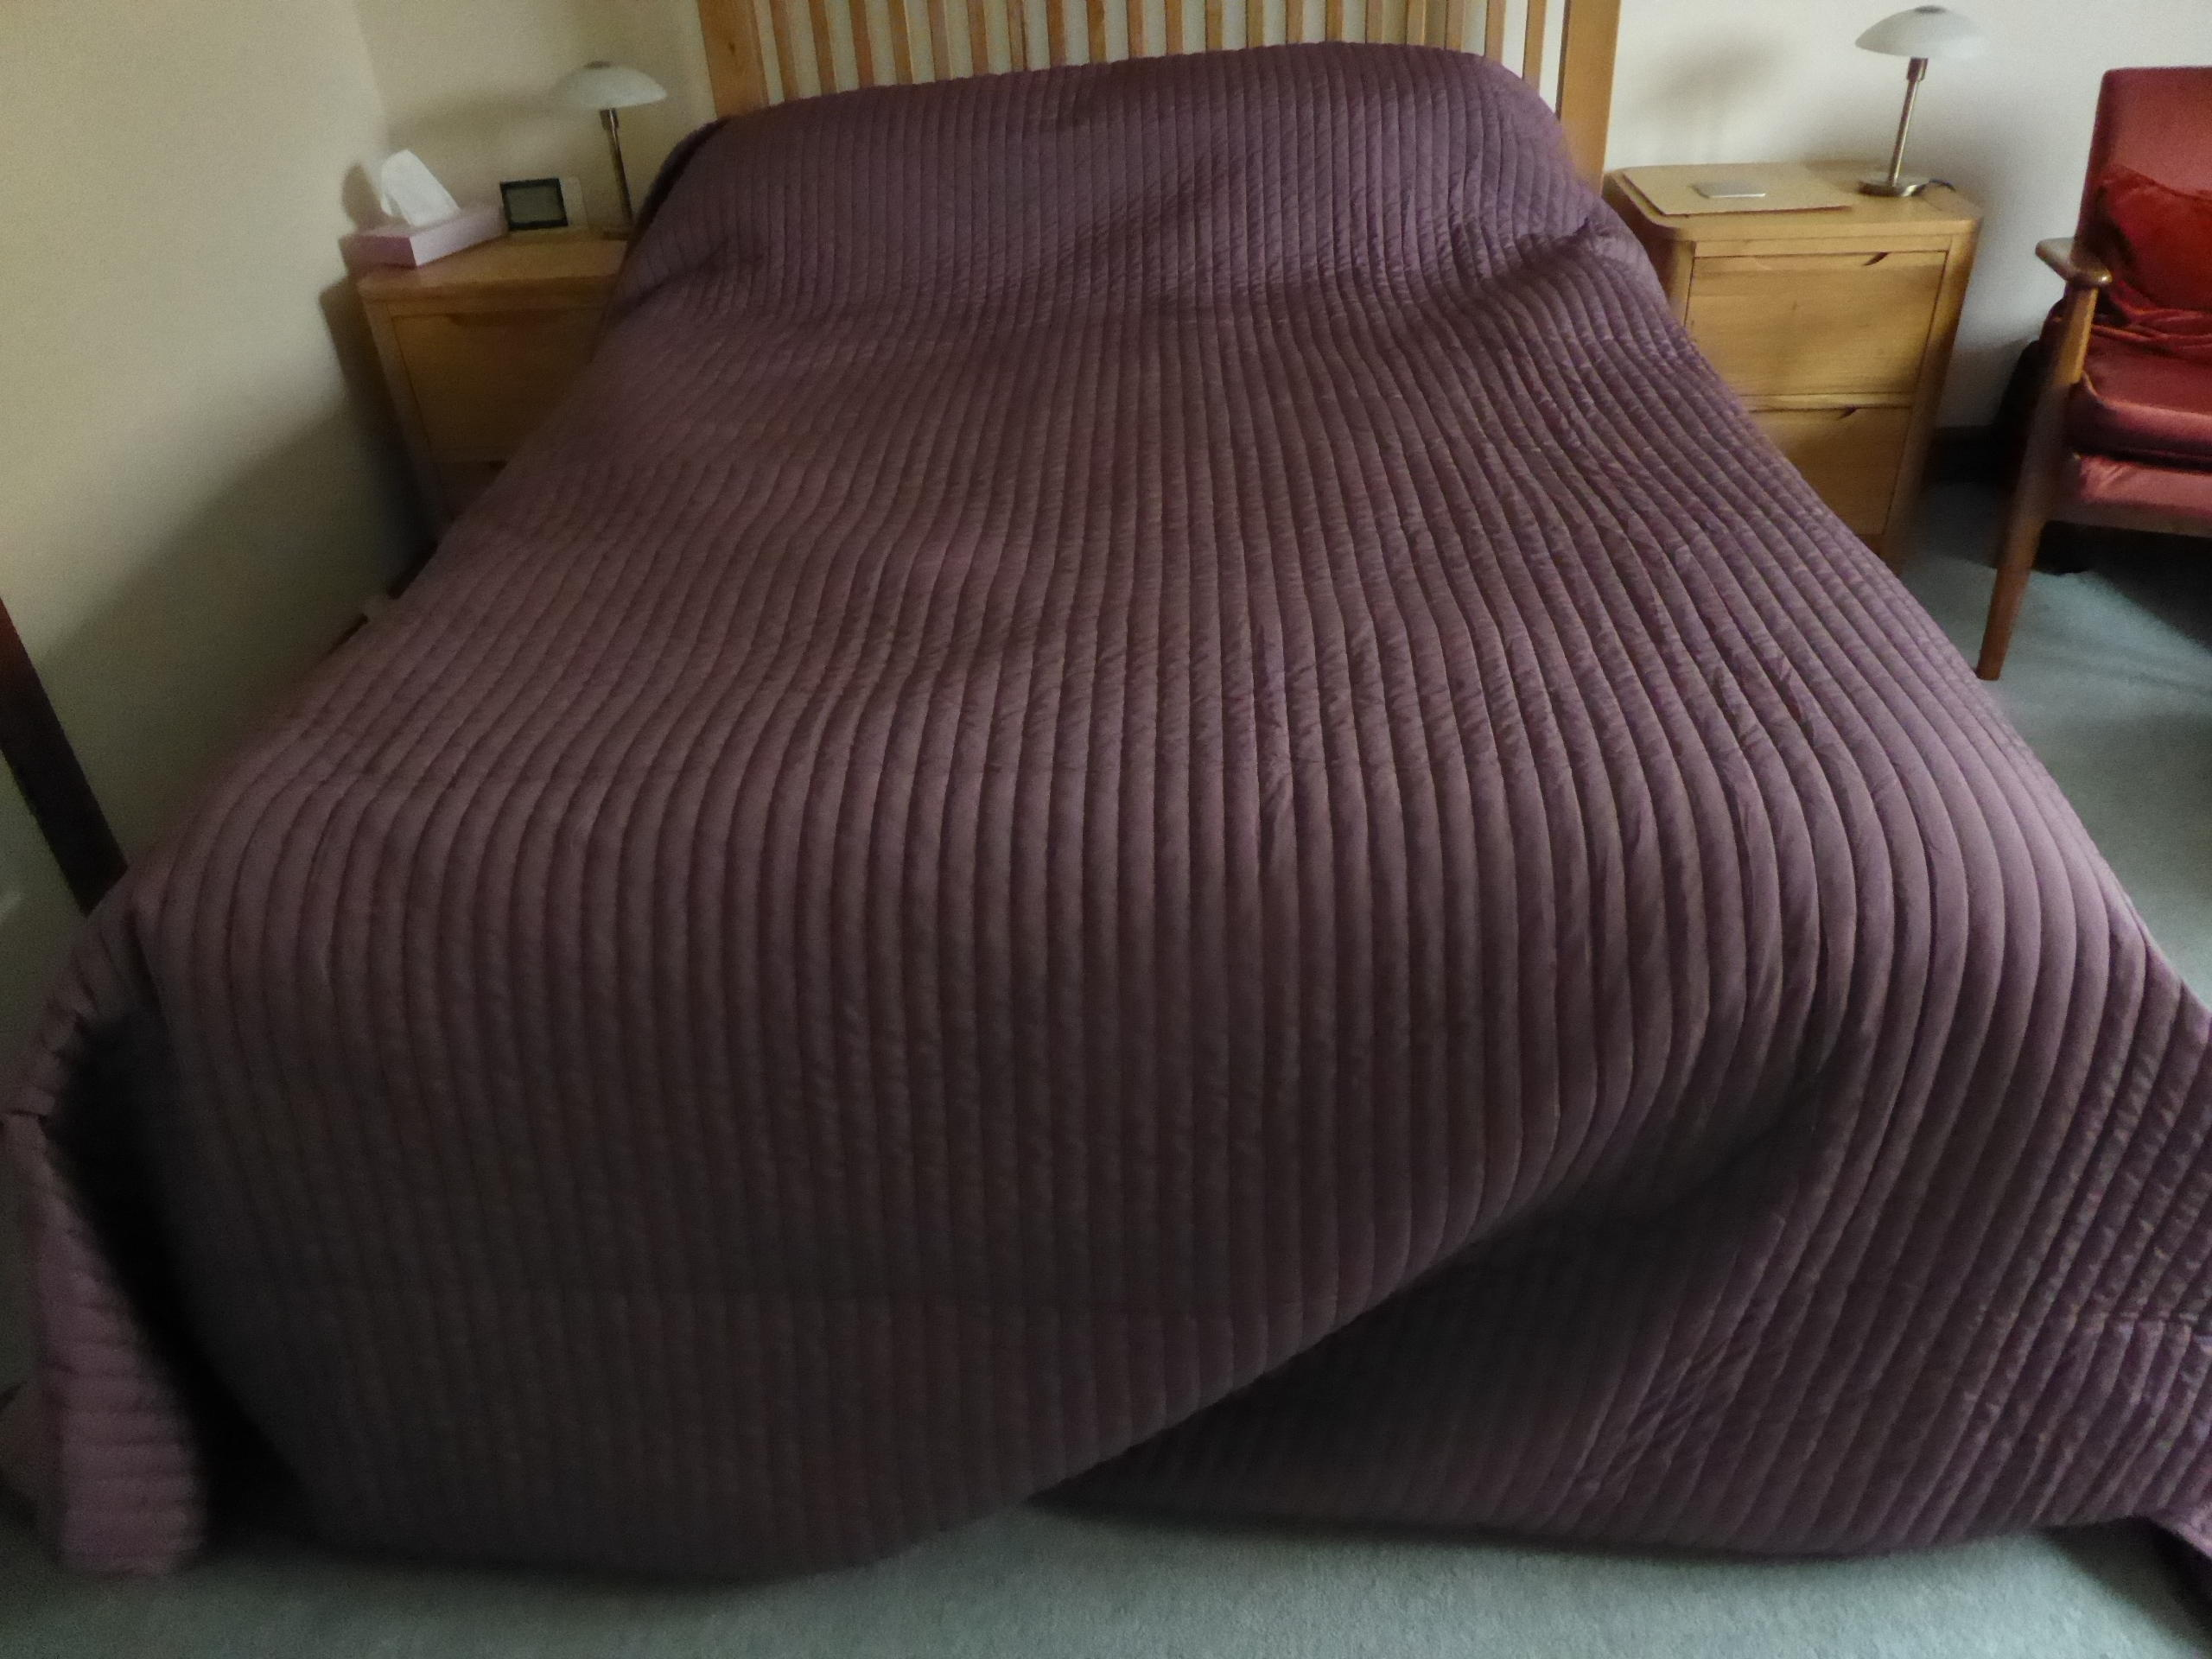 Ikea Karit double quilted bed cover with 2 pillow covers